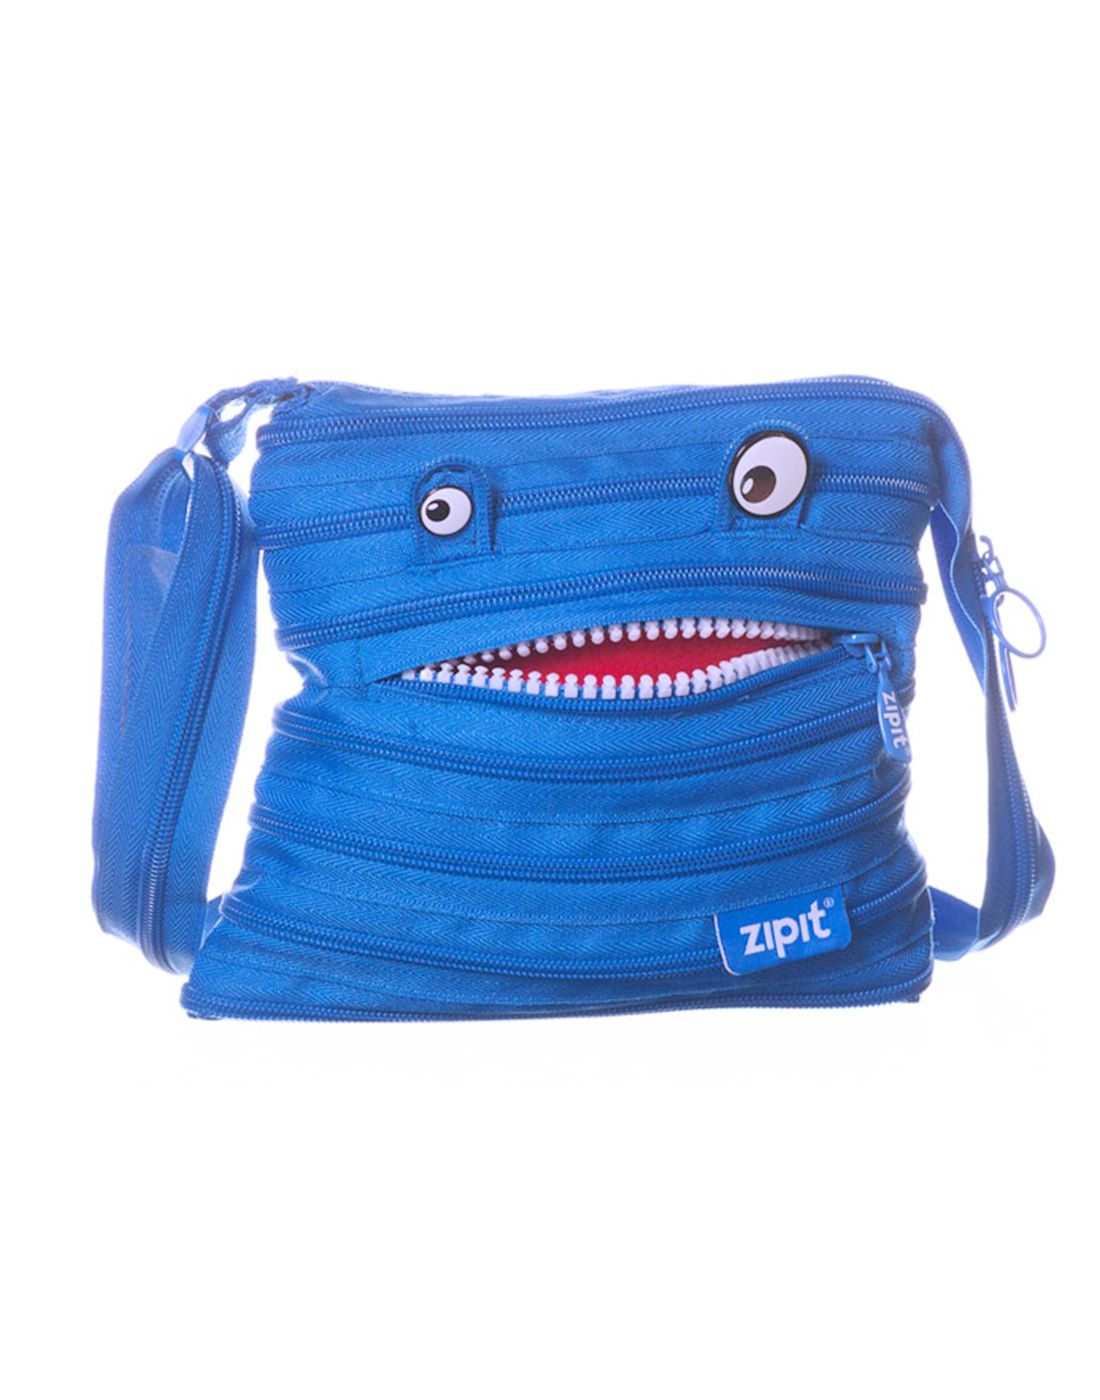 UNTOLD ZIPIT Monstar Teeth Mini Shoulder Bag for Kids, Women ,Girls - Blue - Buy UNTOLD ZIPIT Monstar Teeth Mini Shoulder Bag for Kids, Women ,Girls - Blue ...